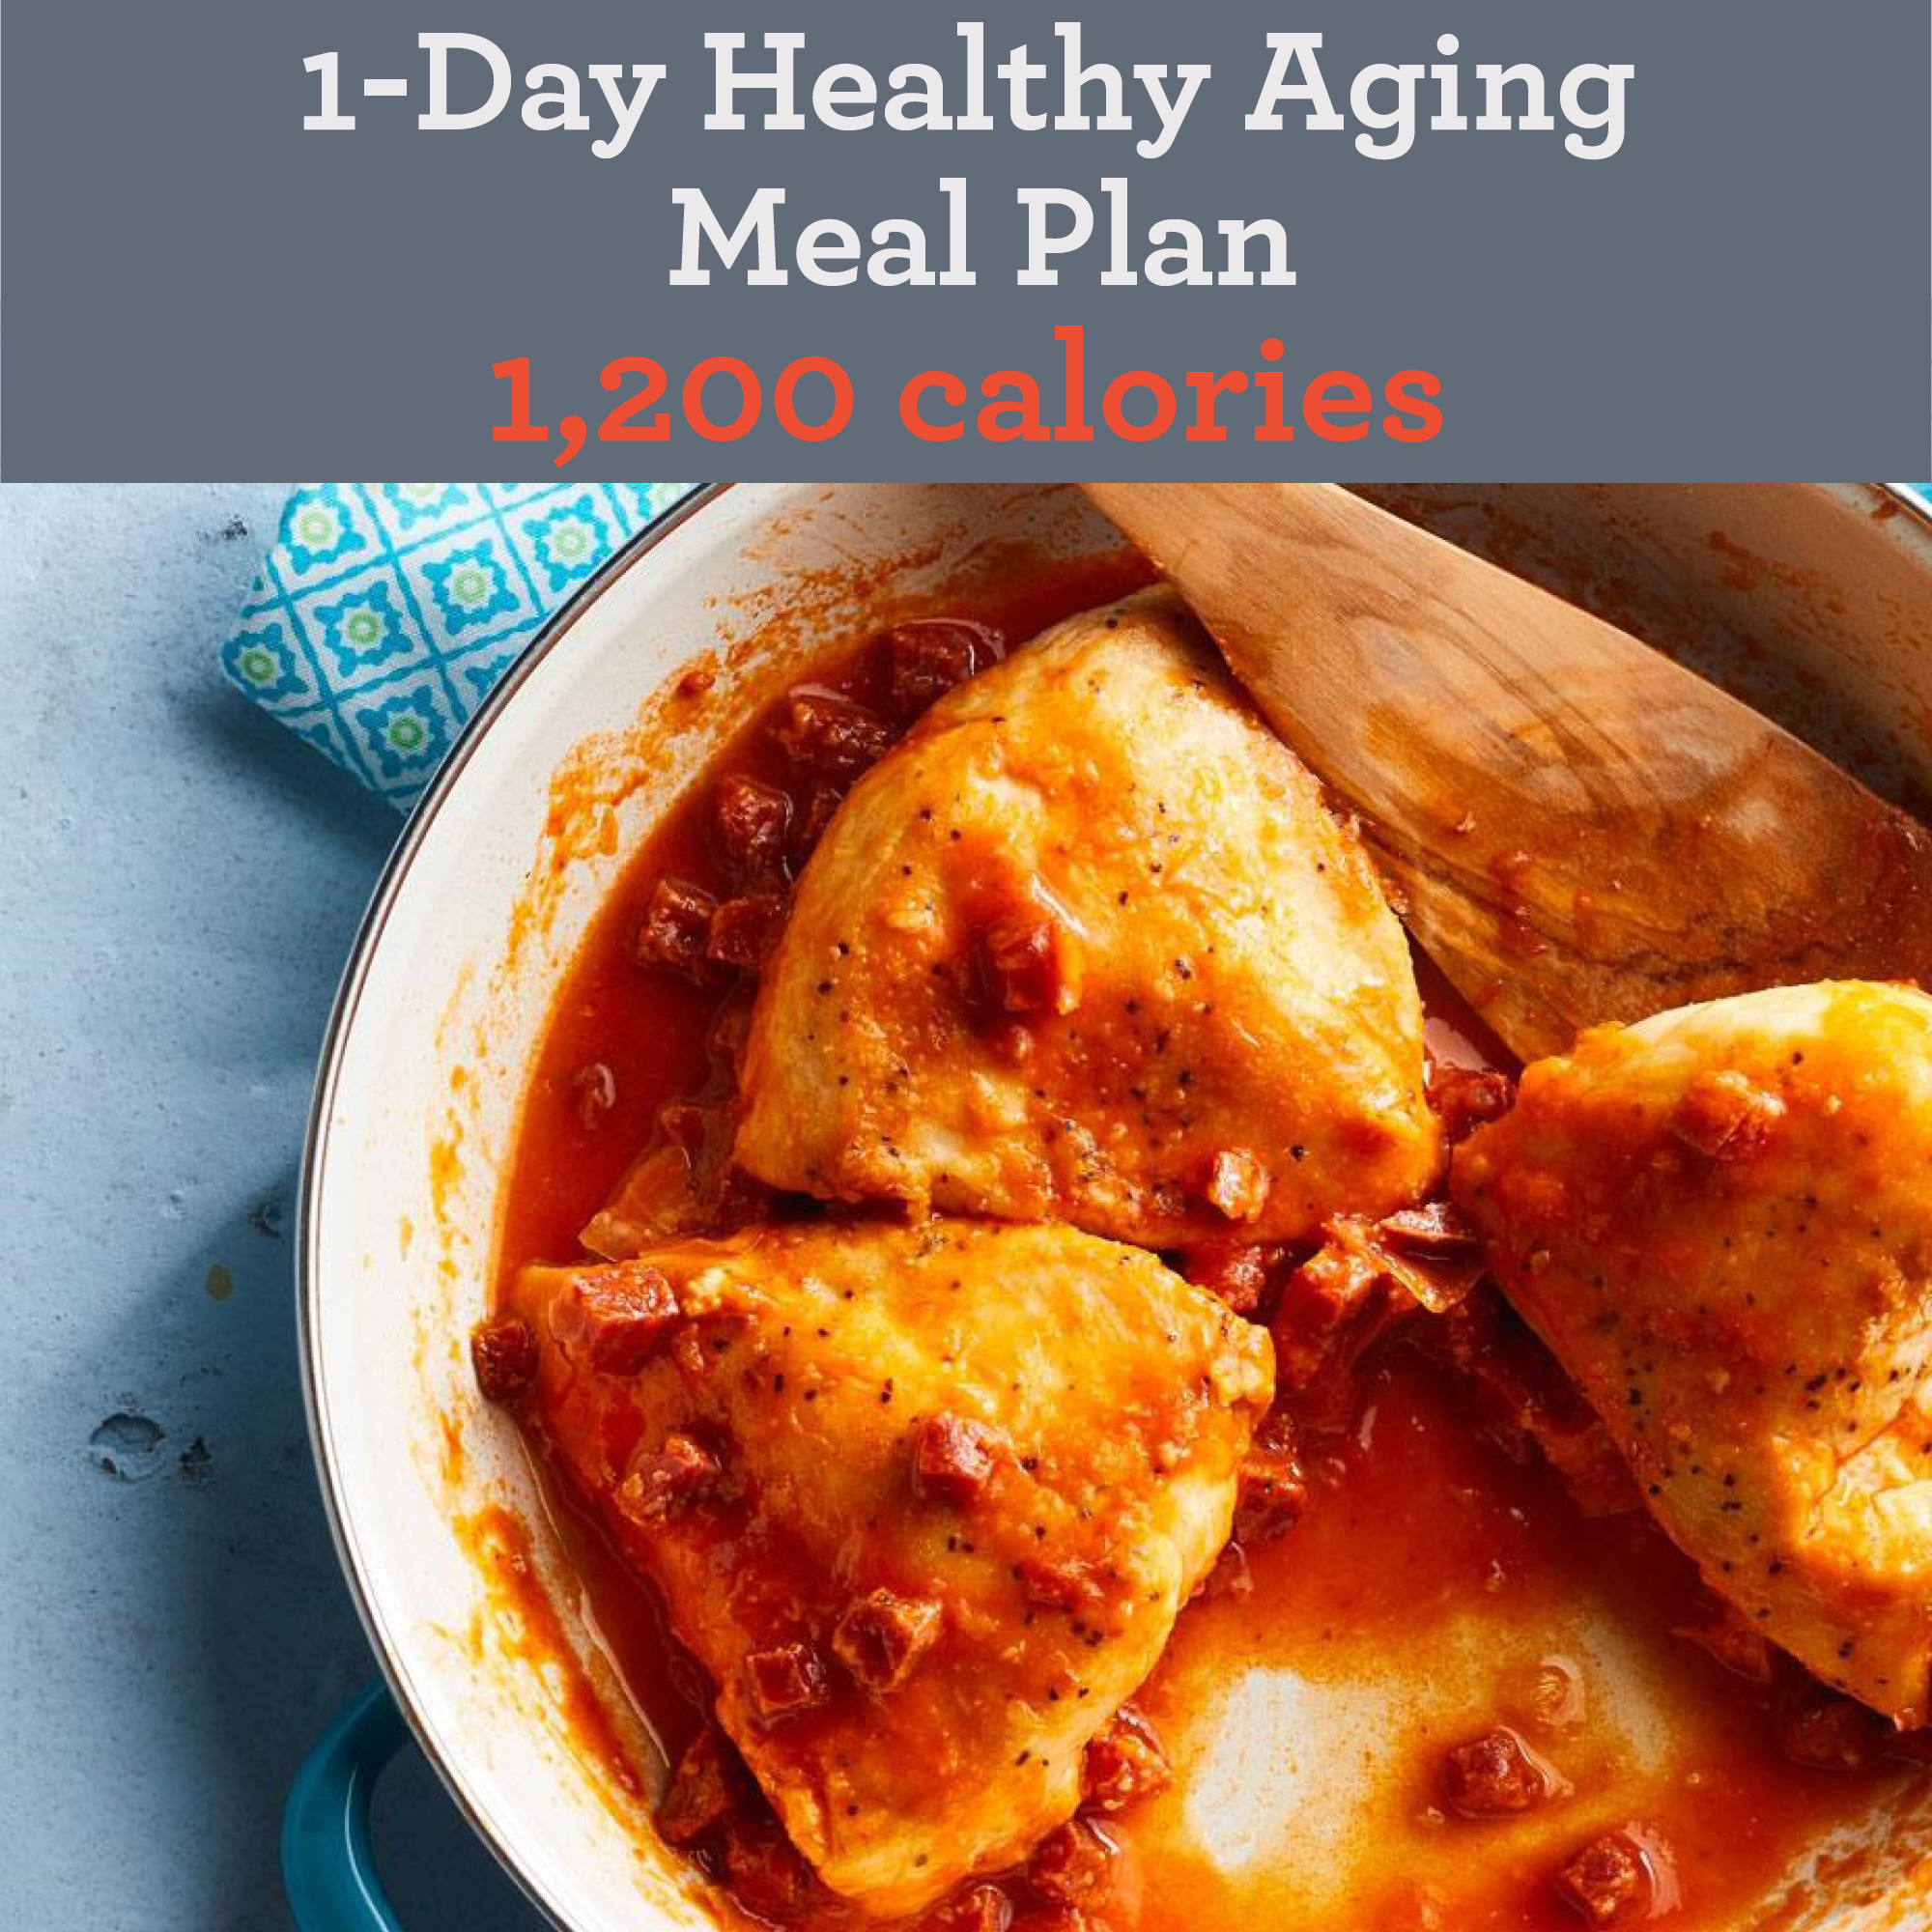 1-Day Healthy-Aging Meal Plan: 1,200 calories